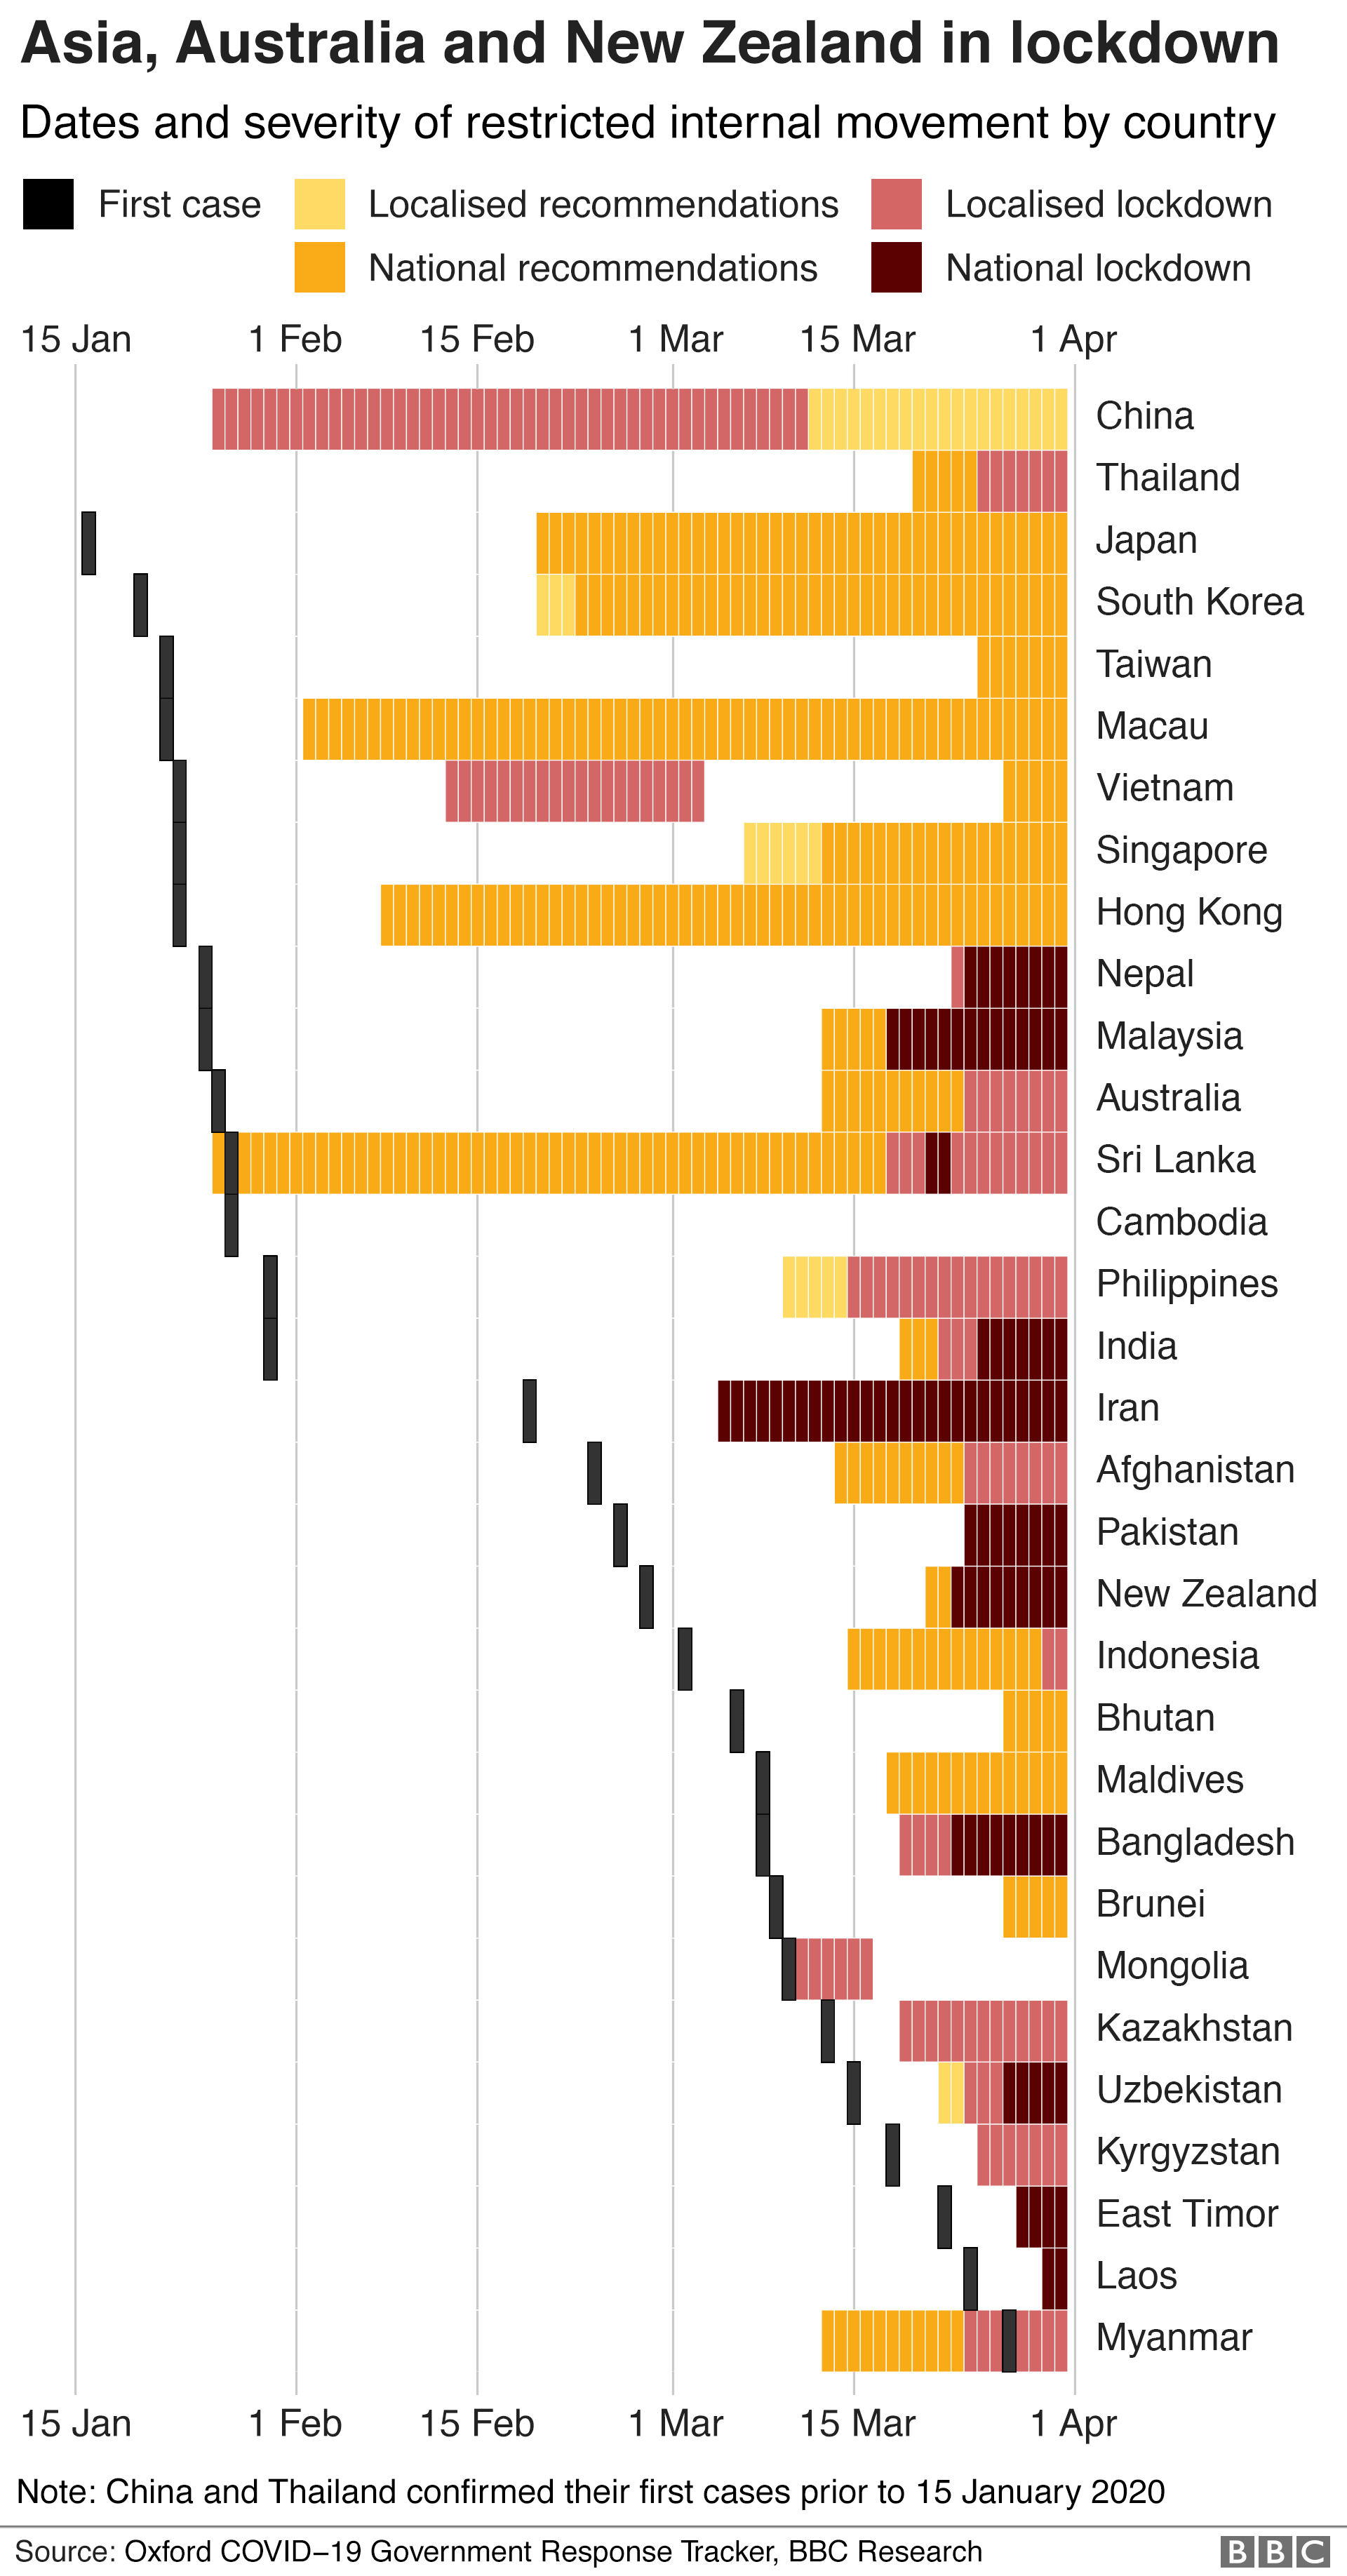 Chart showing the dates and severity of lockdown measures in Asia, Australia and New Zealand